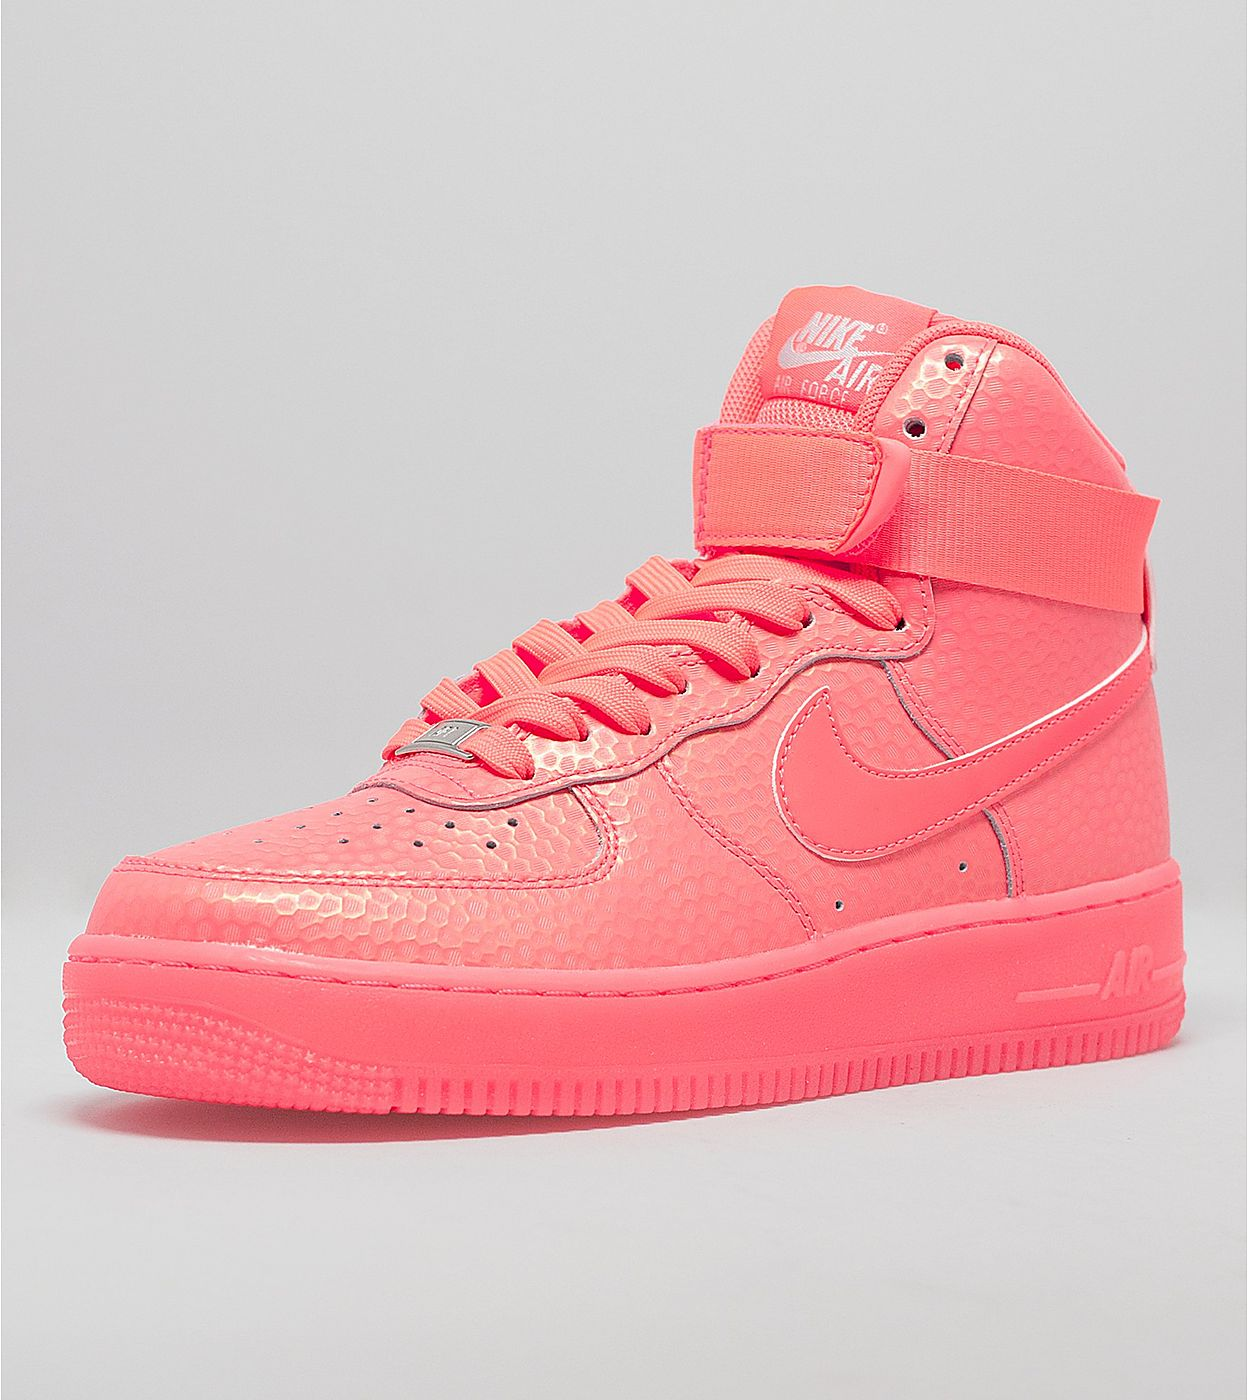 new arrival 791b9 ce277 Nike Women s Air Force 1 High Premium Color  Hot Lava Hot Lava Style   654440-800. Price   110.00